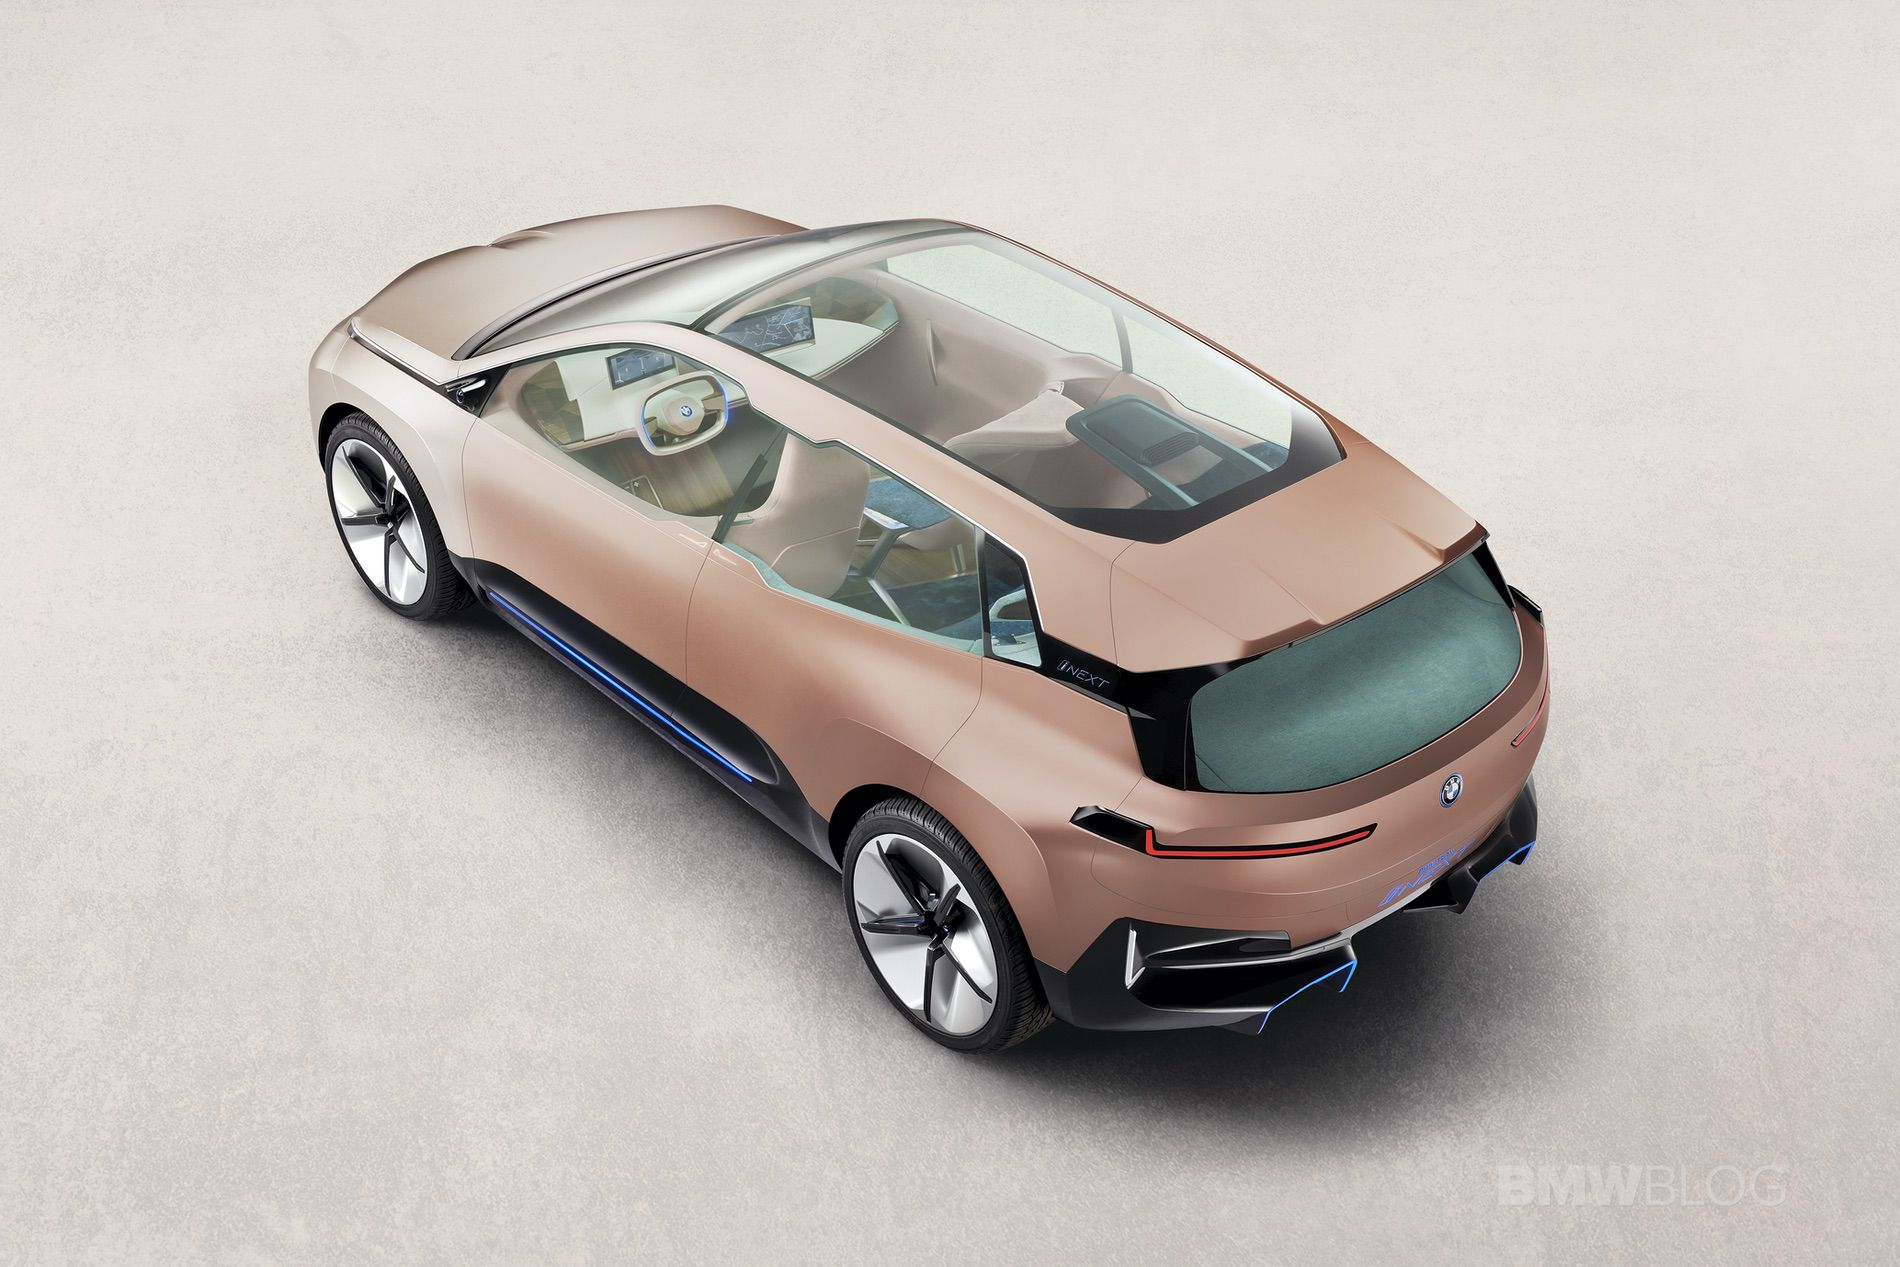 In 2021, BMW will pilot a fleet of 500 BMW iNEXT vehicles with Level 4 and 5 autonomy